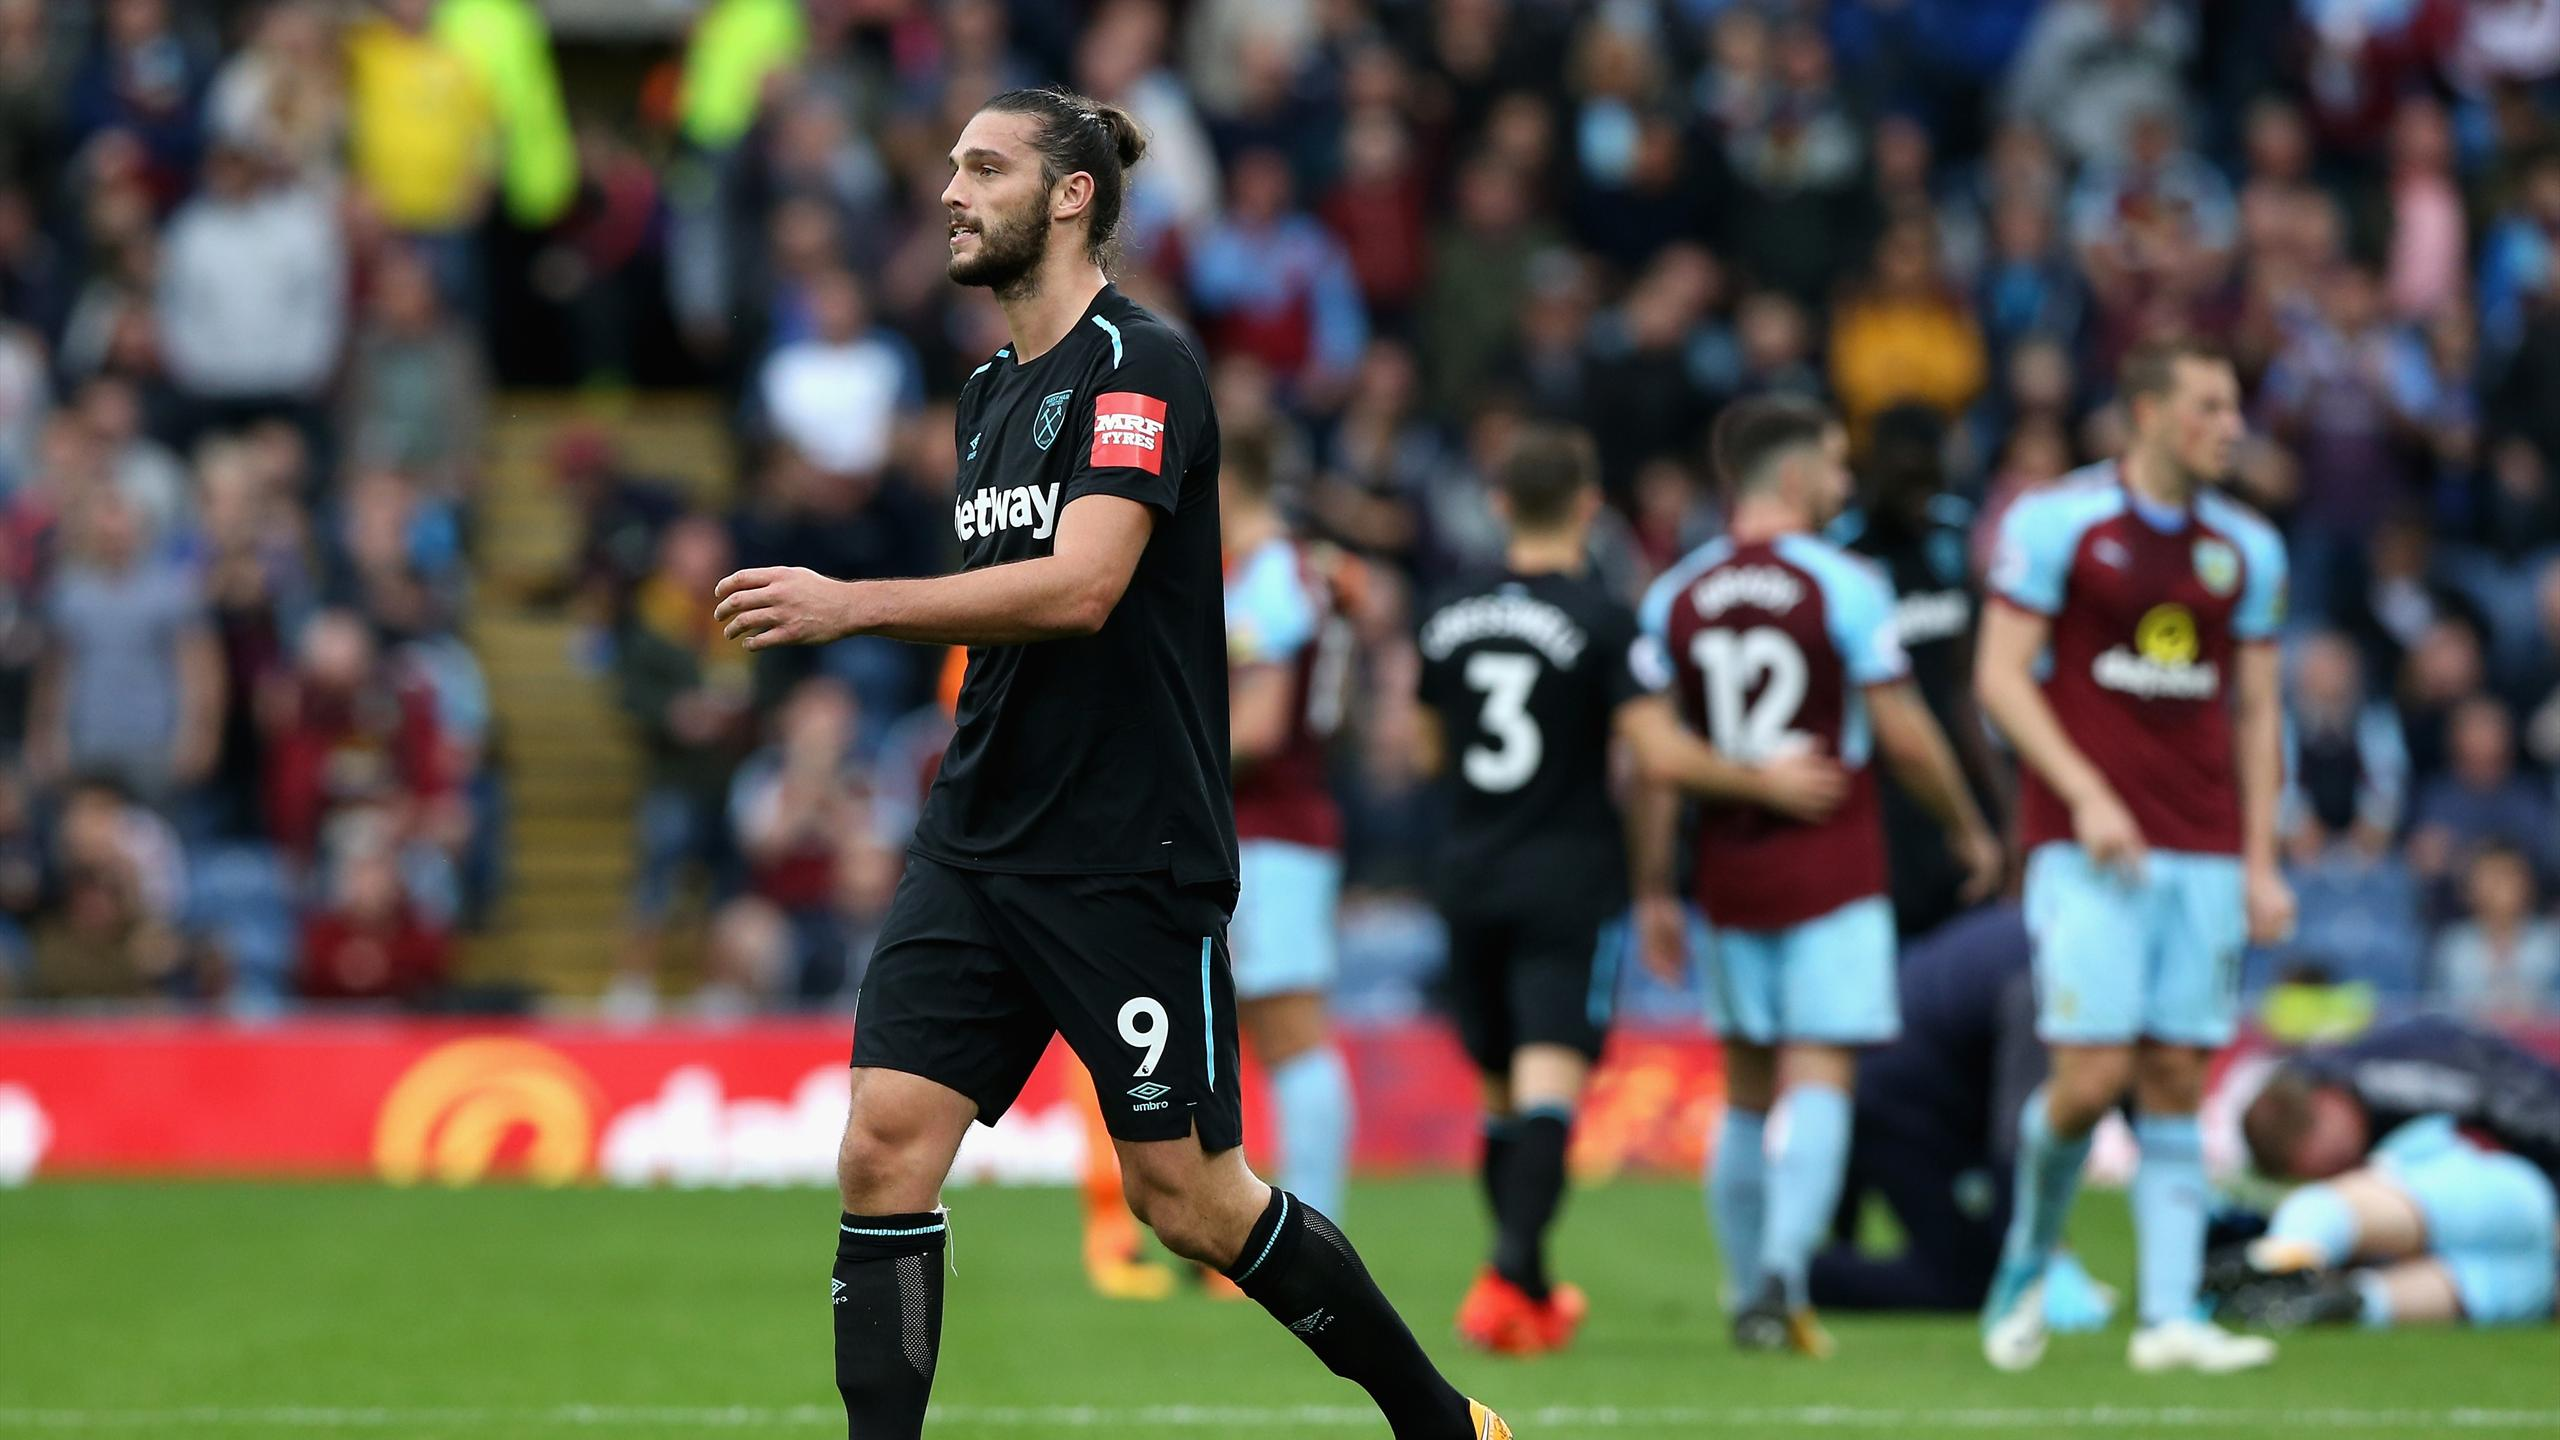 Andy Carroll Player Profile Football Eurosport